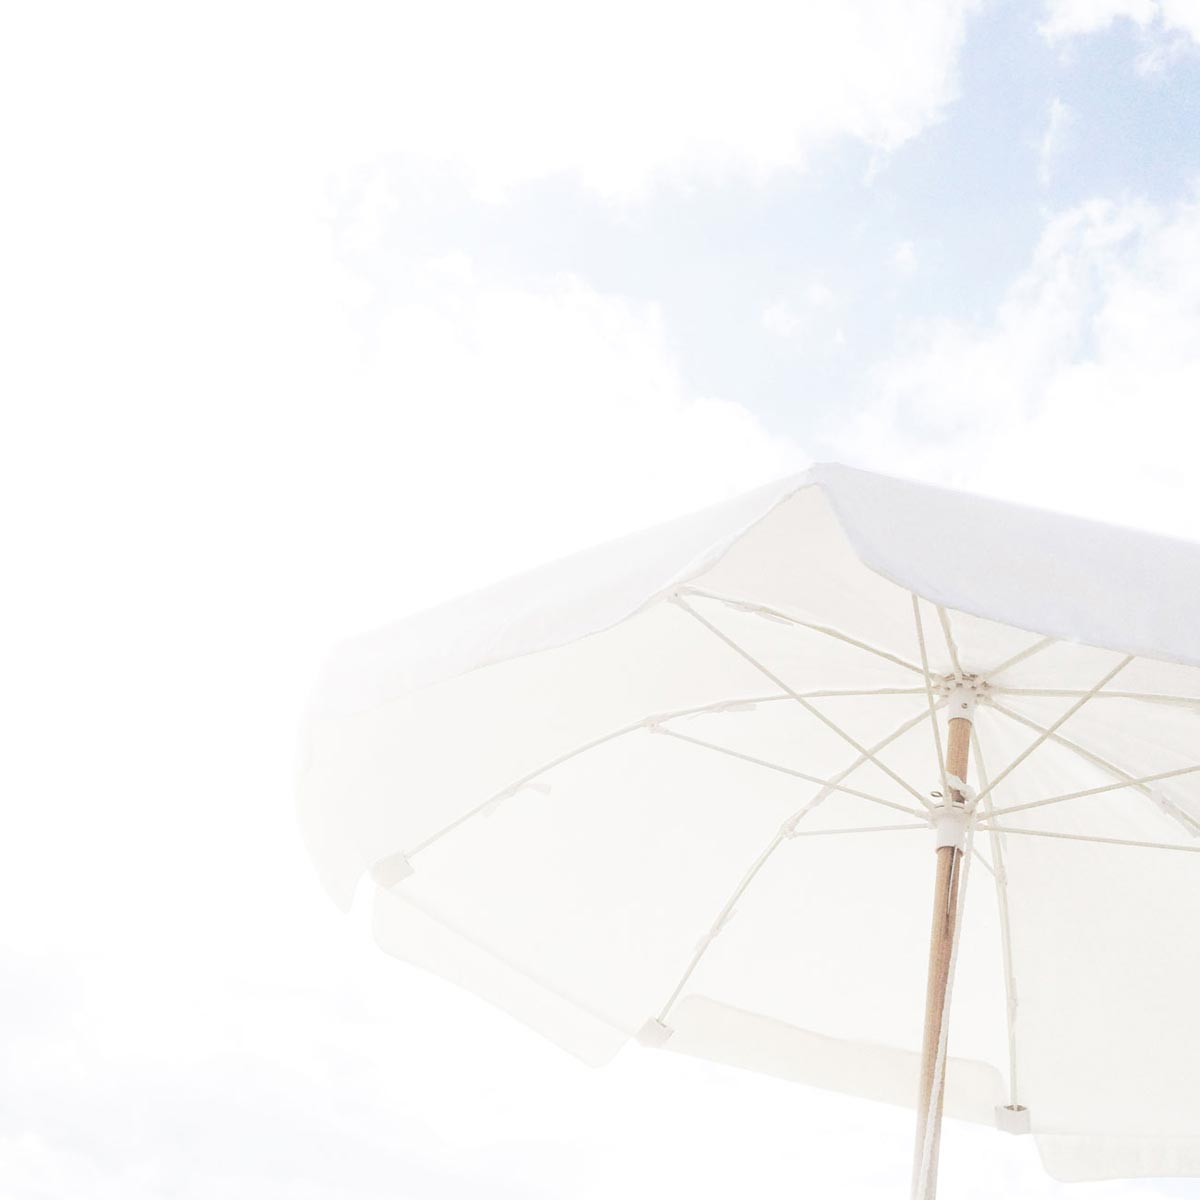 Photo by Stefanie Etow of large white beach umbrella in the corner of a photo of the sky